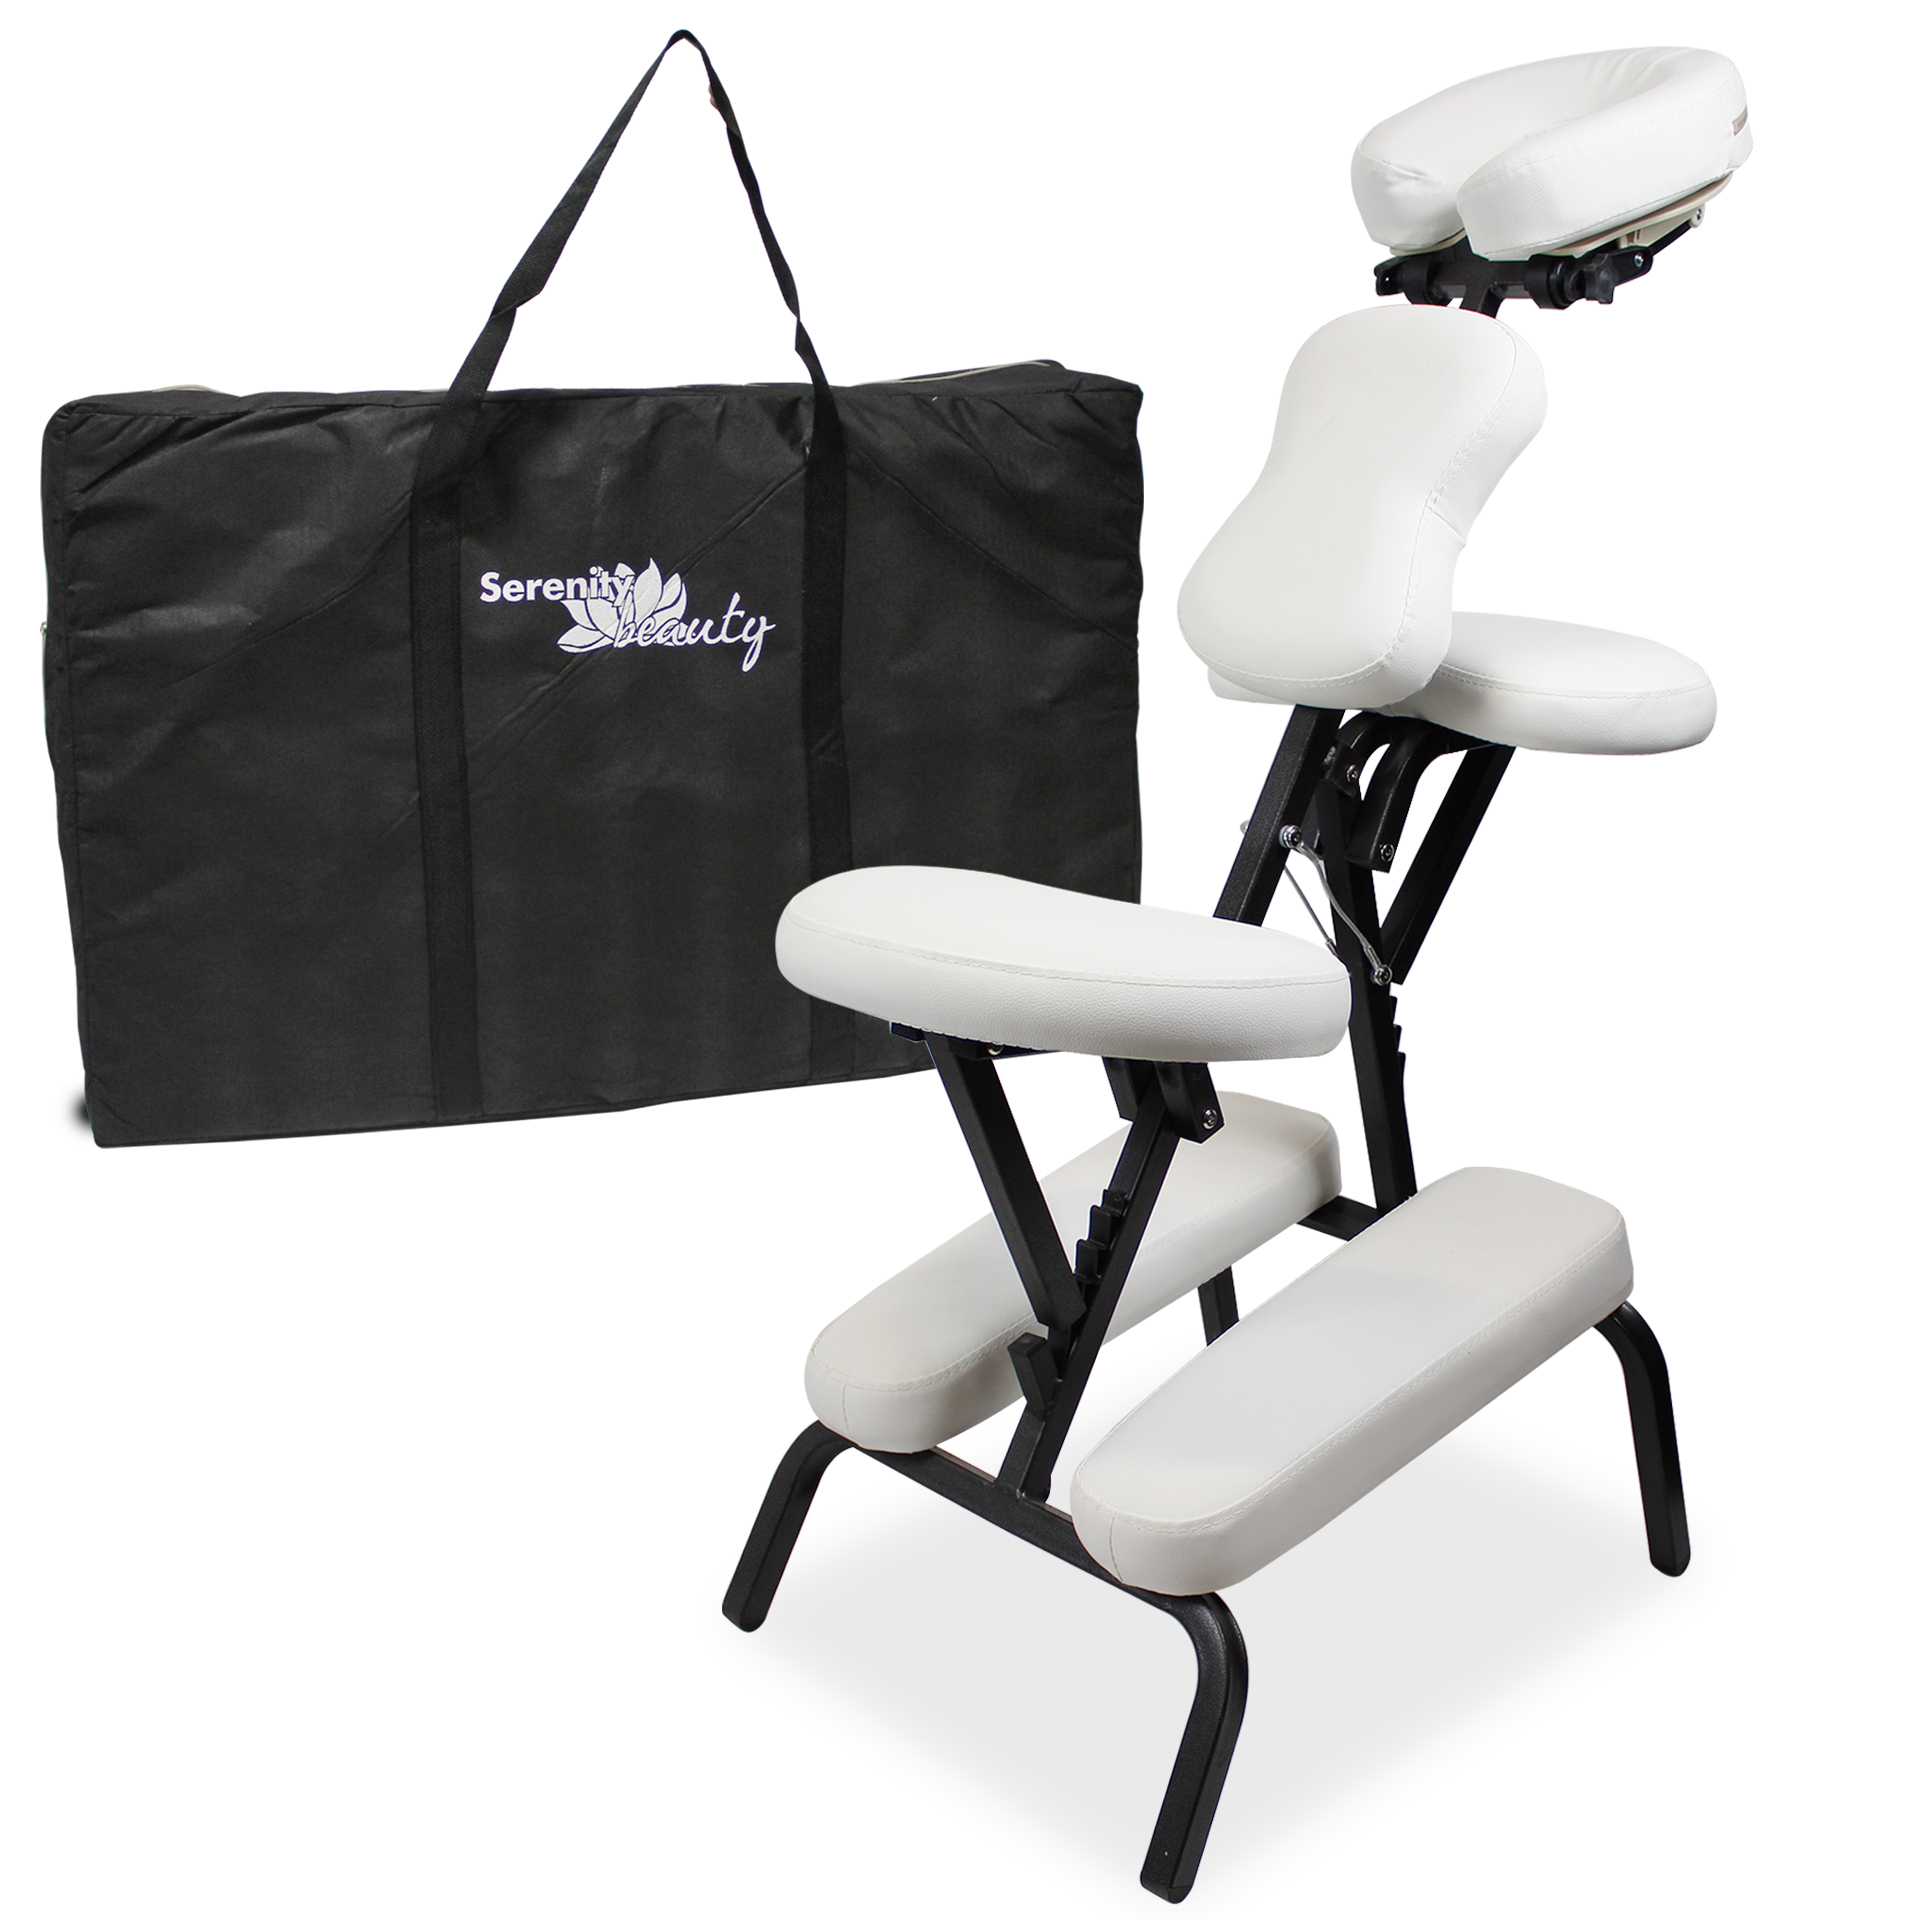 Peachy Details About Tattoo Chair Massage Stool Portable Reiki Adjustable Folding Beauty Salon Facial Pdpeps Interior Chair Design Pdpepsorg